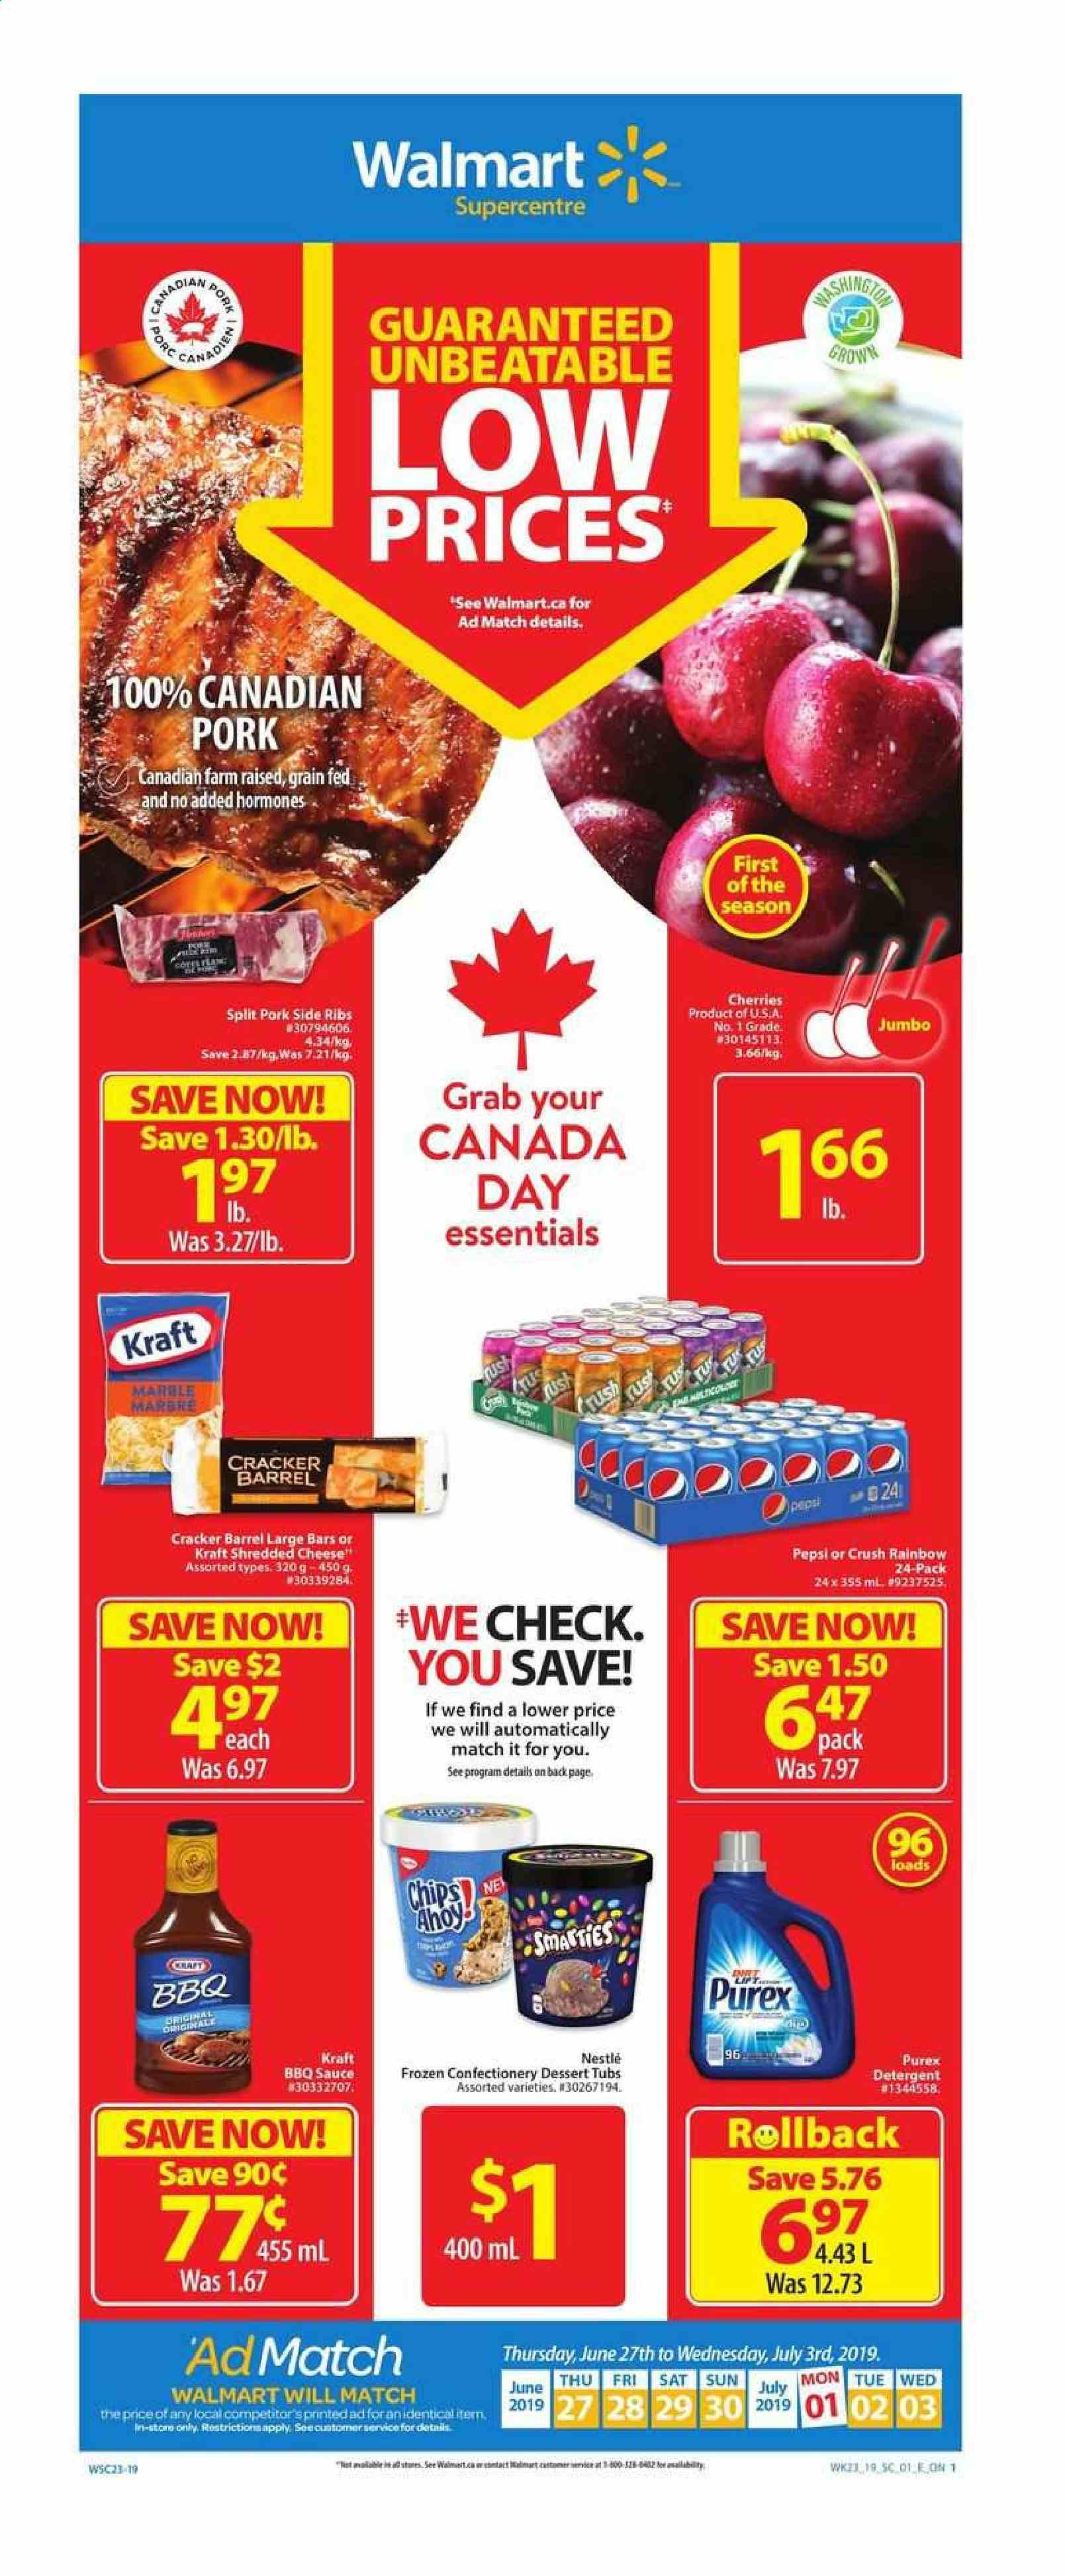 Walmart Flyer - June 27, 2019 - July 03, 2019 - Sales products - barbecue sauce, detergent, frozen, nestlé, shredded cheese, pork meat, cherries, pepsi, chips, cheese, dessert, cracker, sauce, ribs, porc. Page 1.